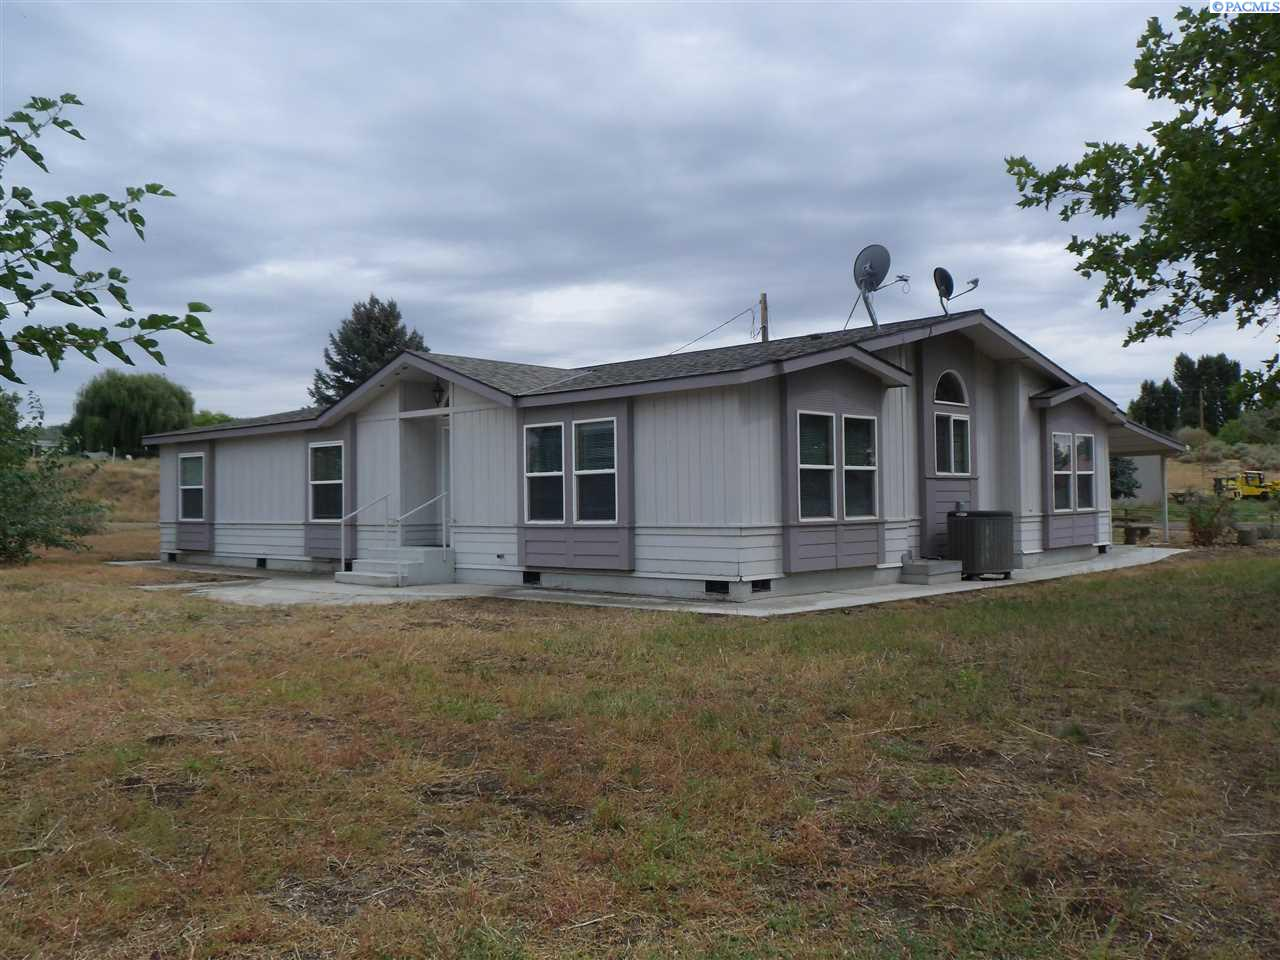 Manufactured Home for Sale at 70 Nila Road Eltopia, Washington 99330 United States